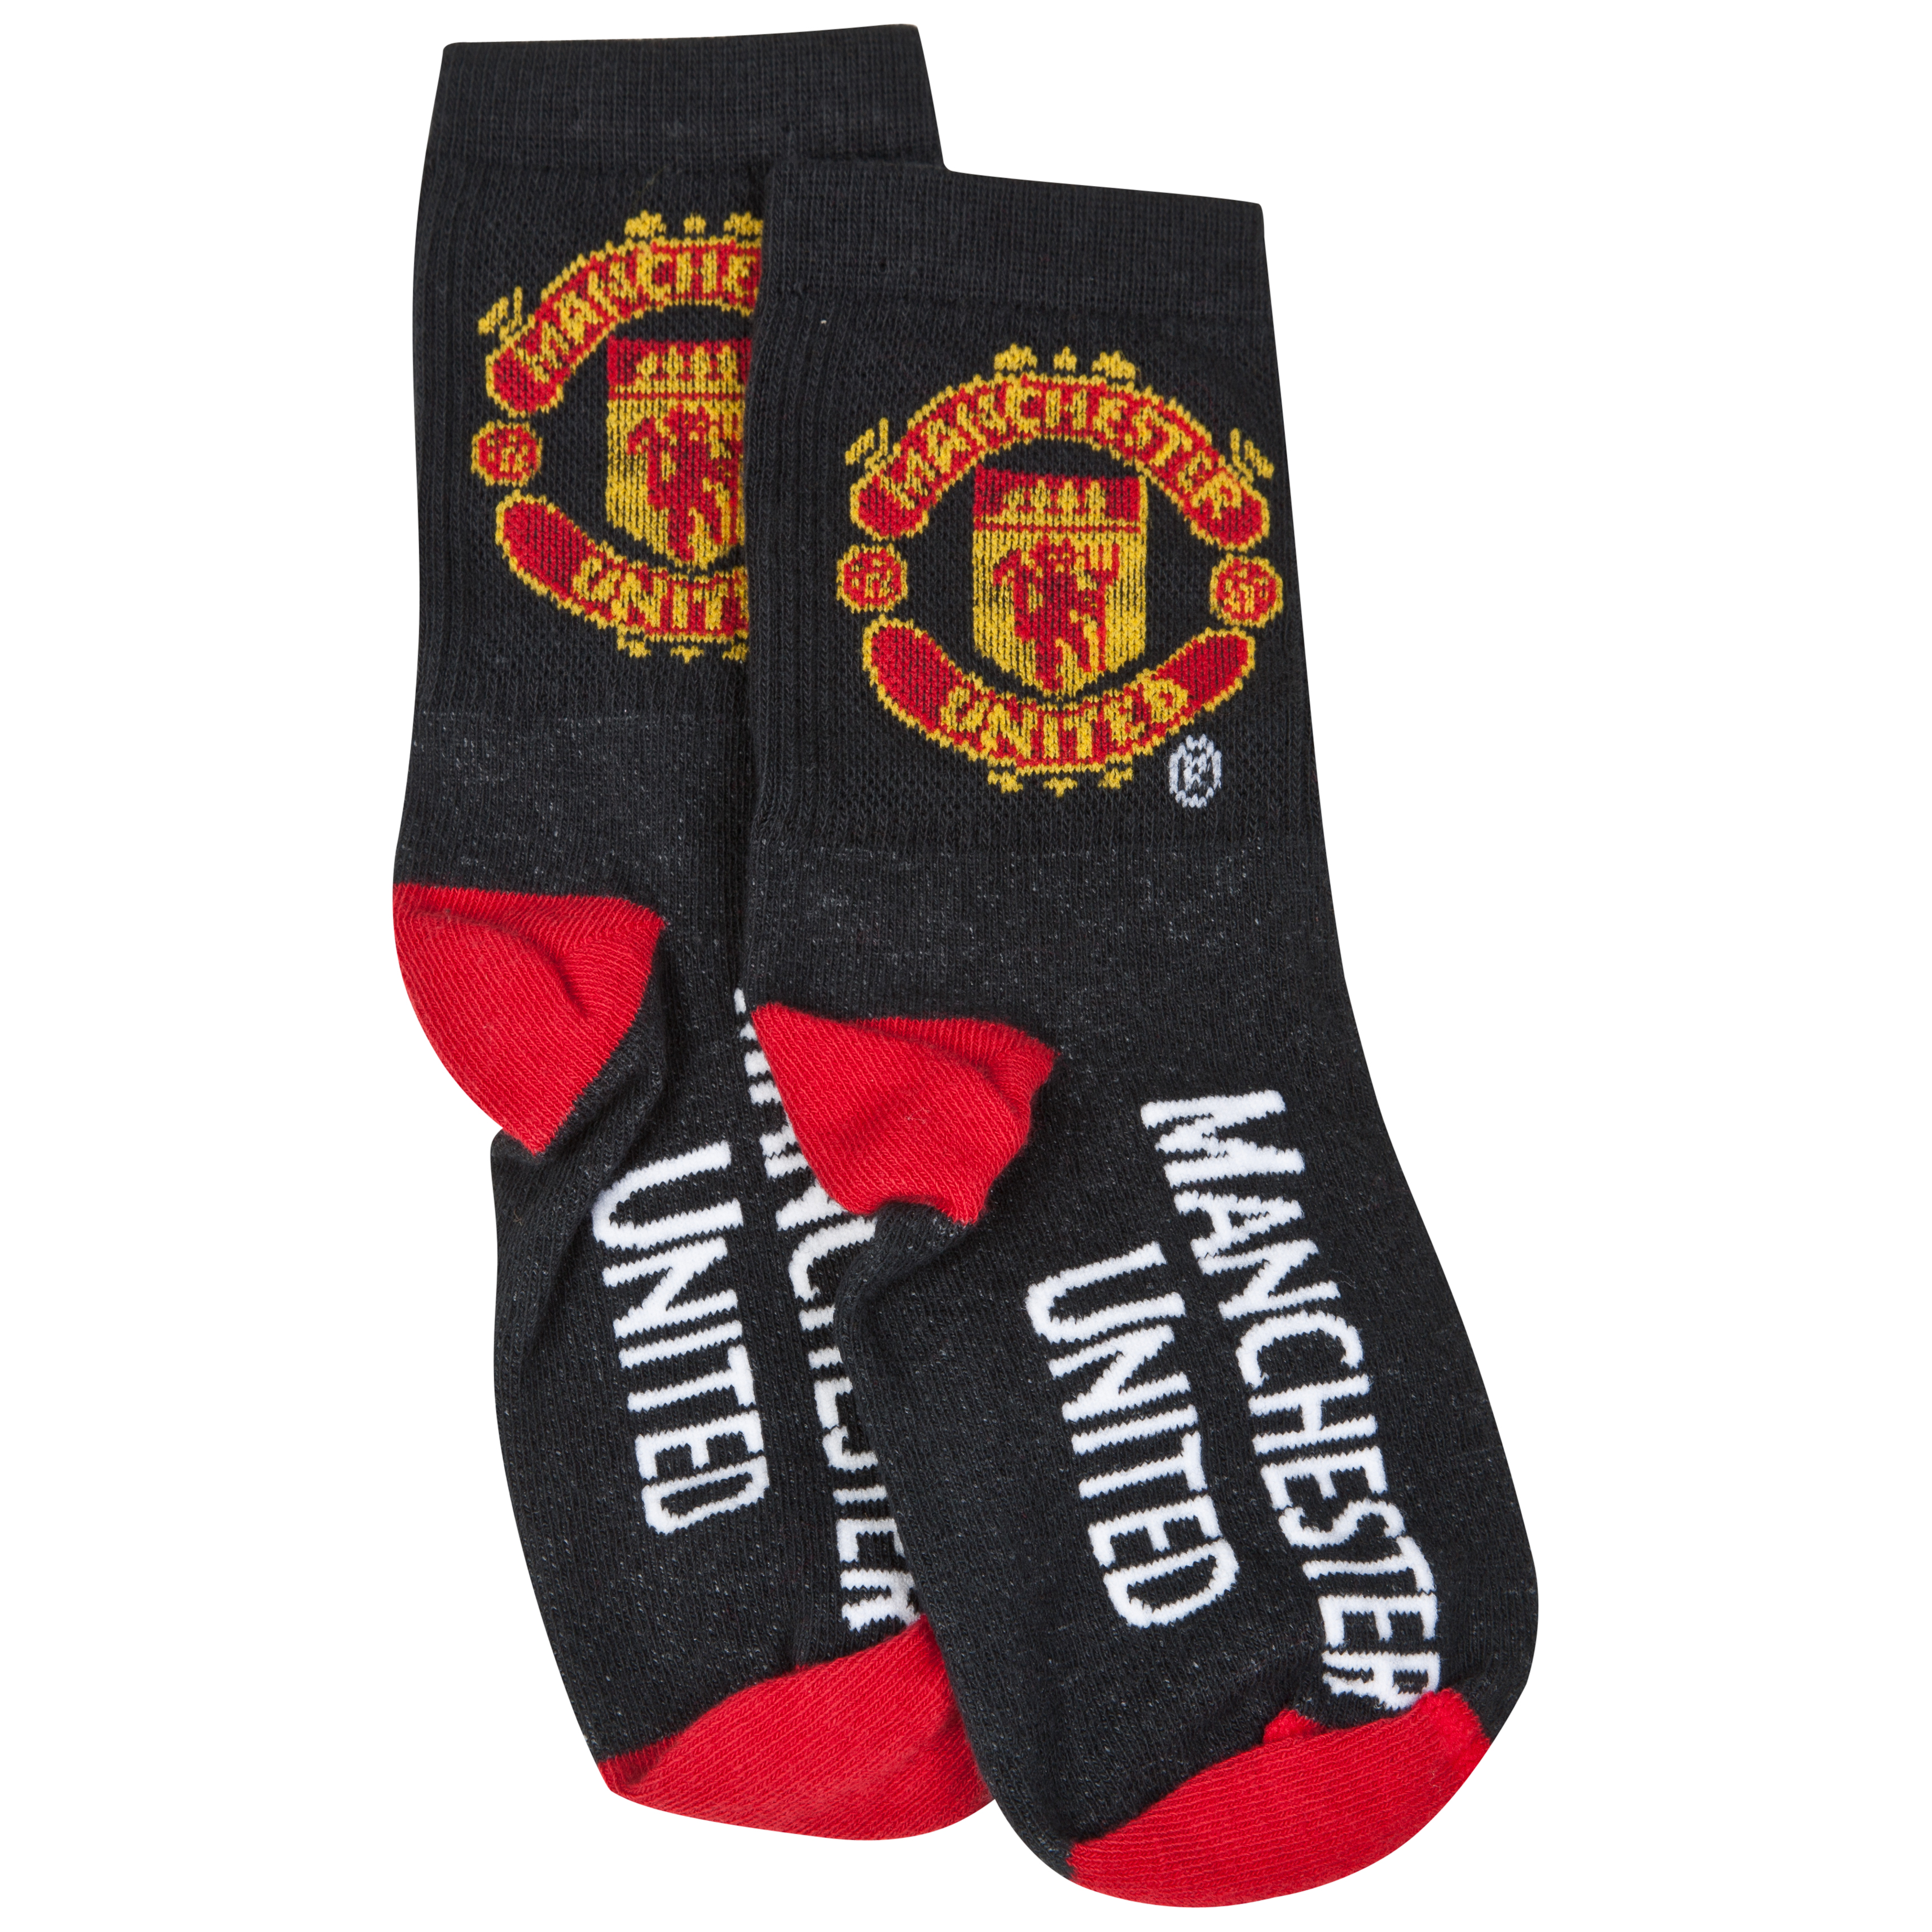 Manchester United Crest Sports Socks - Black - Boys